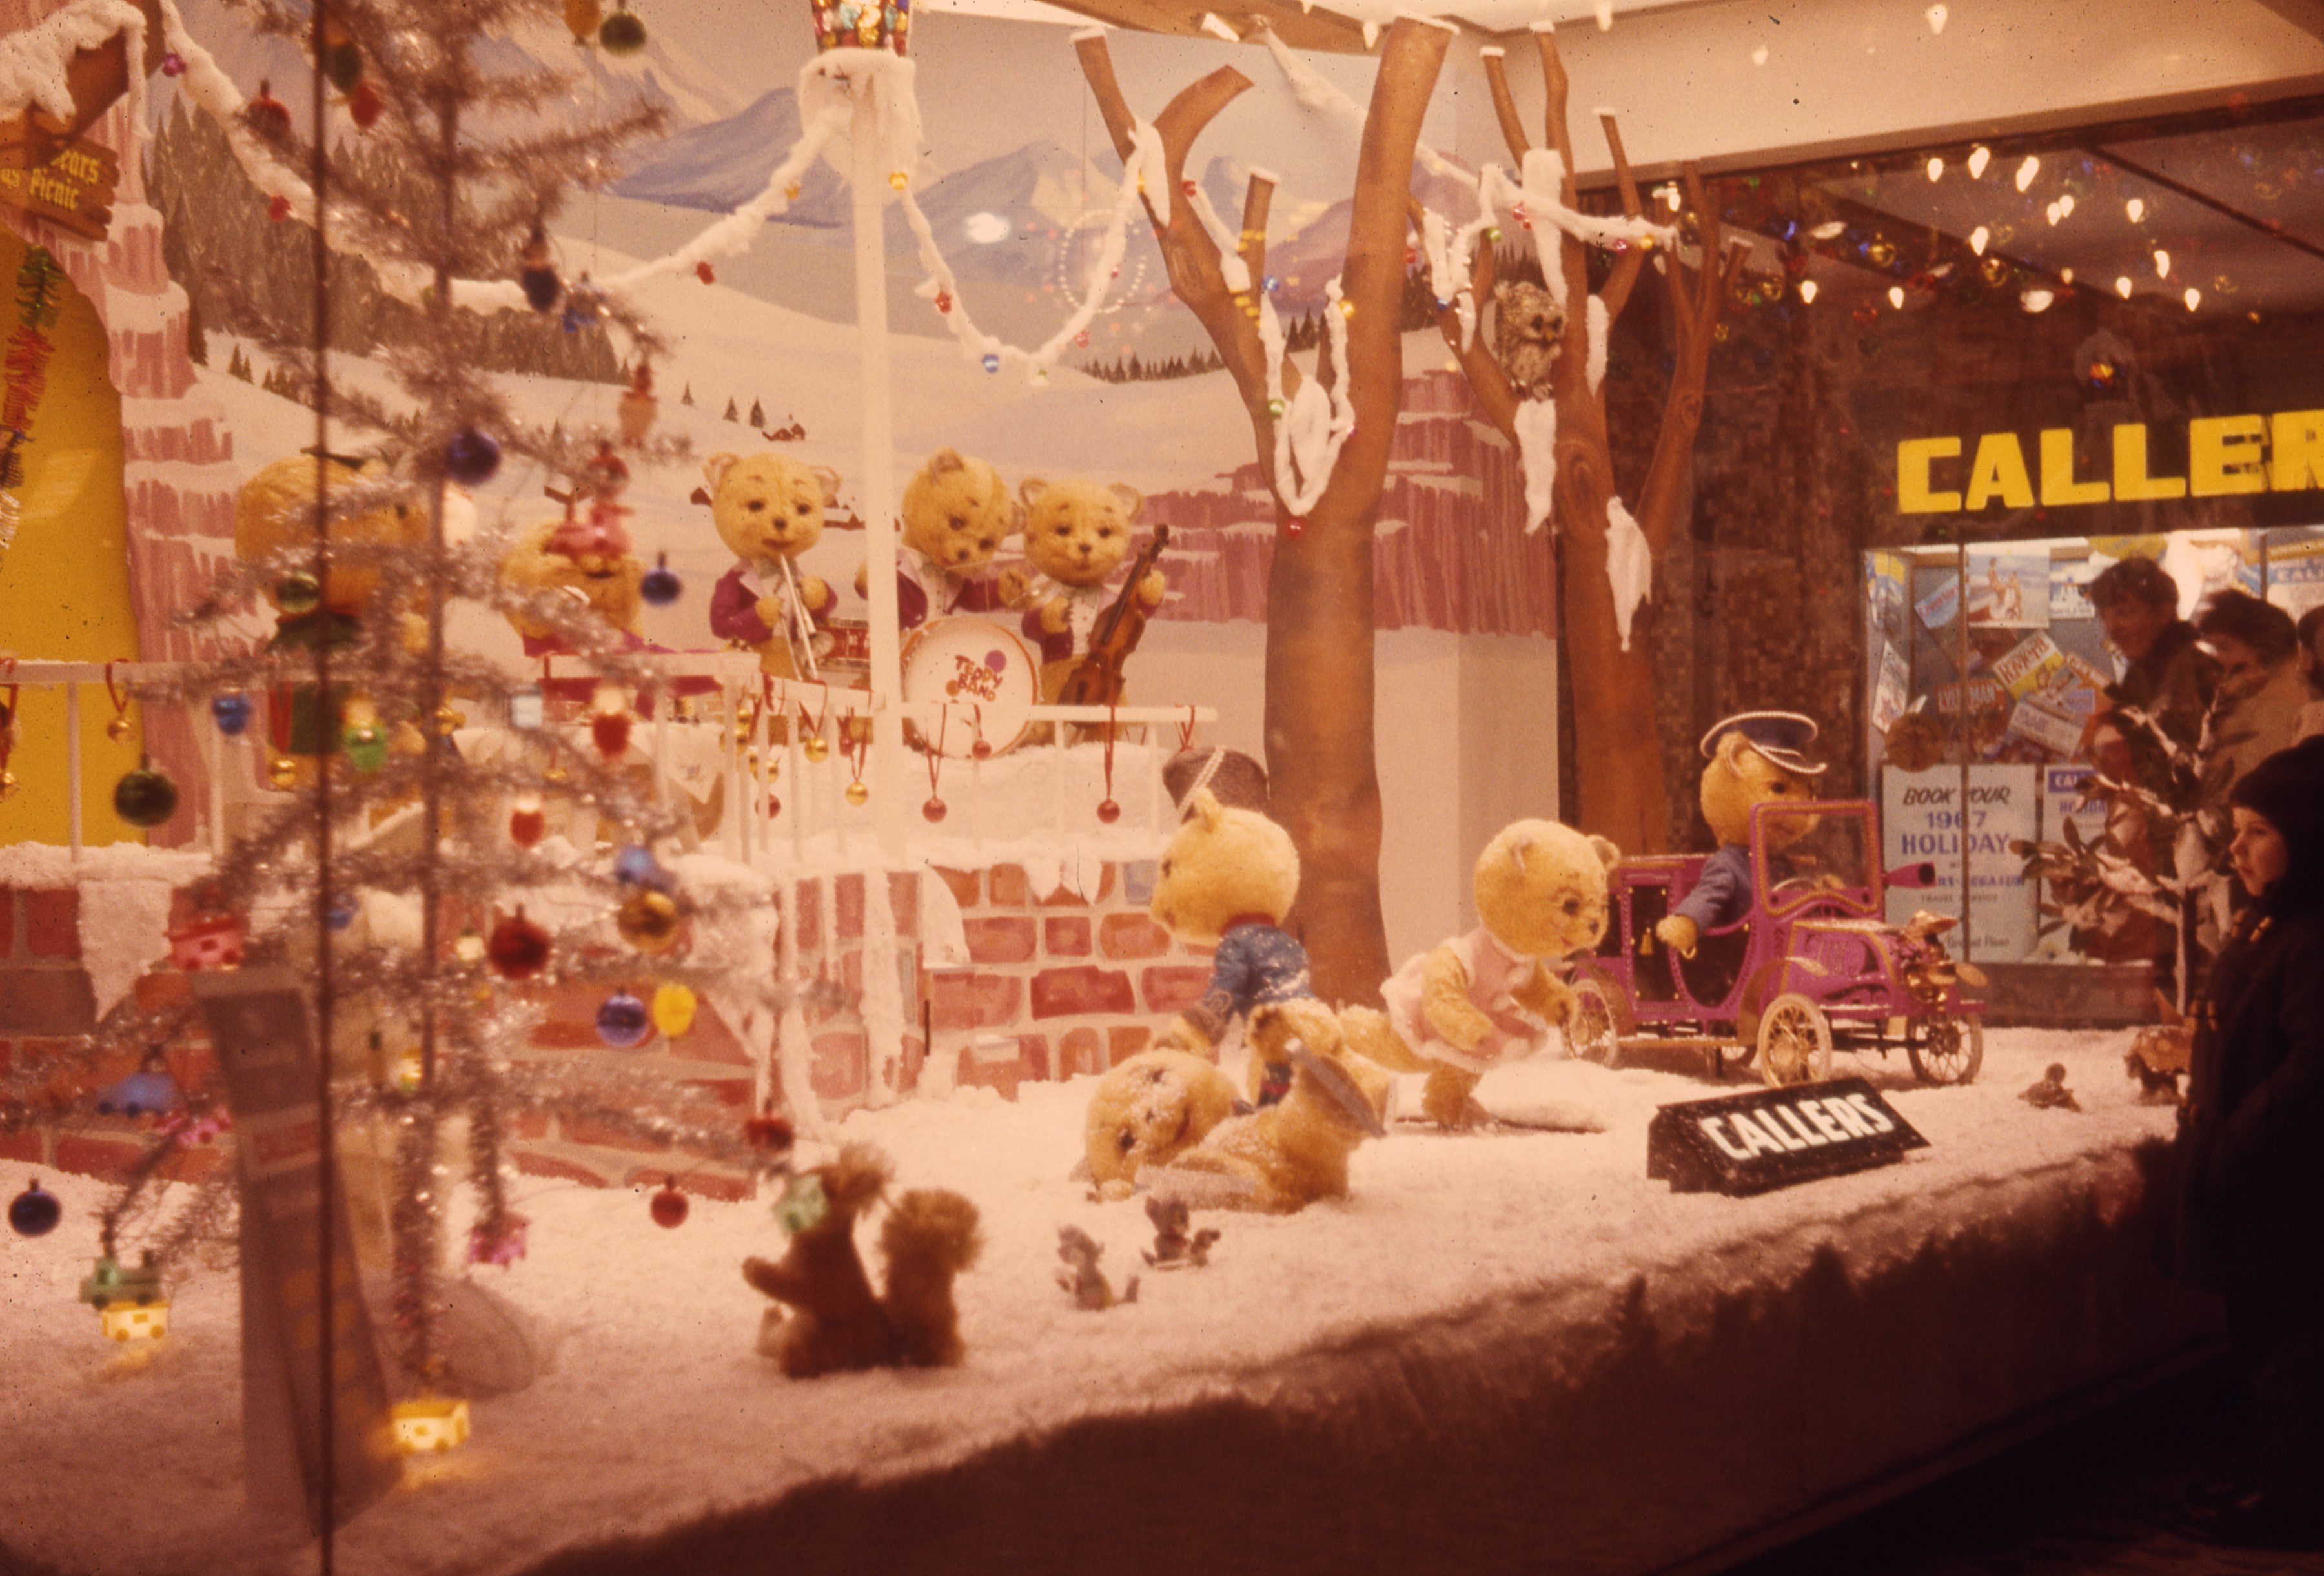 The photograph shows a bear Band in a winter wonderland display at Callers department store in Newcastle upon Tyne. This is a 35mm slide. It was taken in 1966.